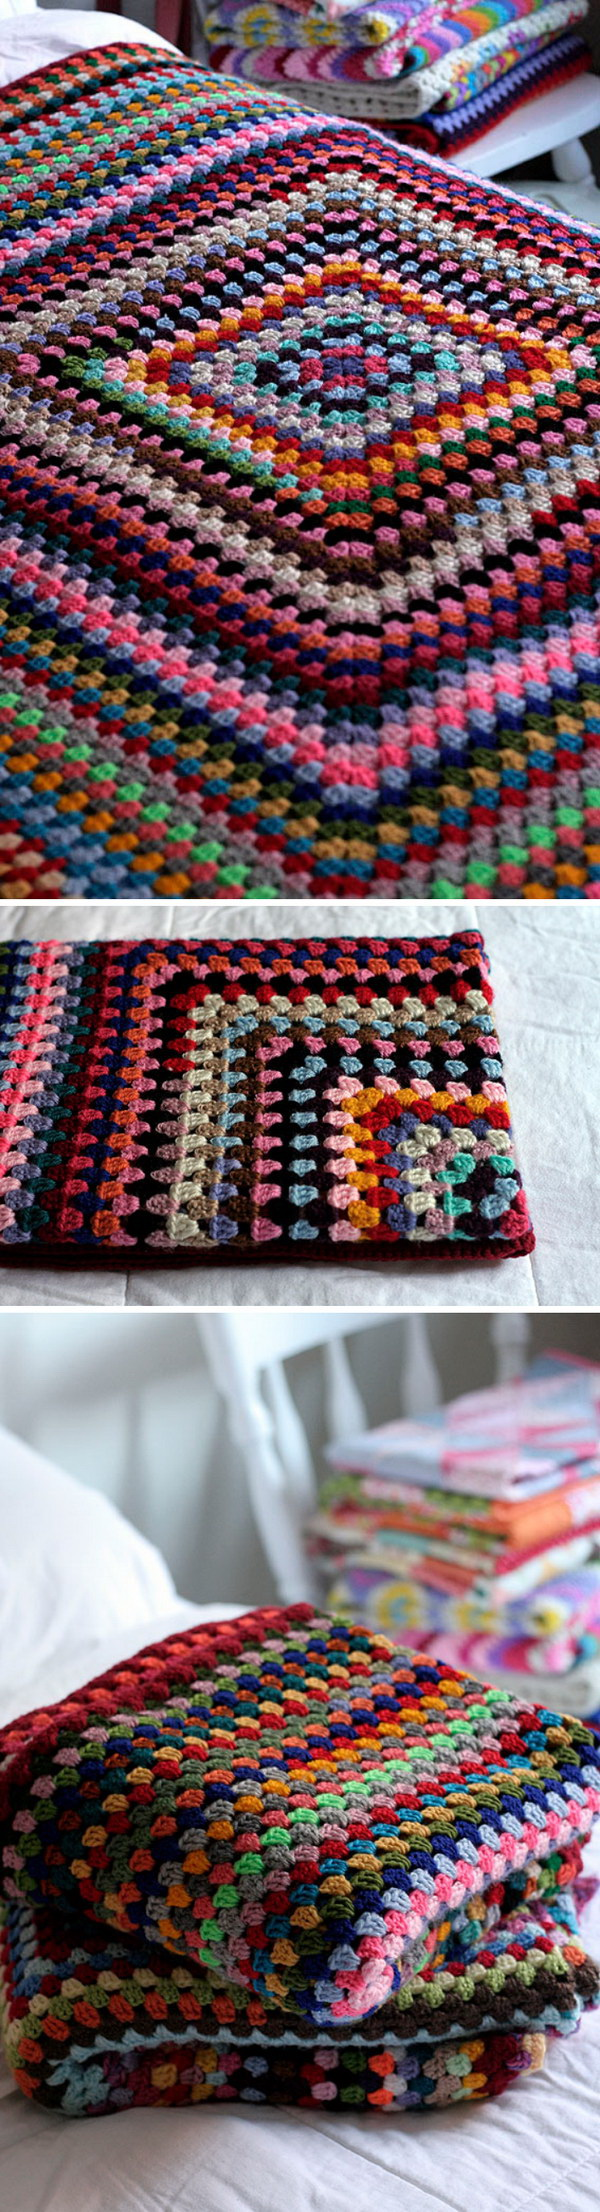 Quick And Easy Crochet Blanket Patterns For Beginners: Giant Granny Square Blankets. .